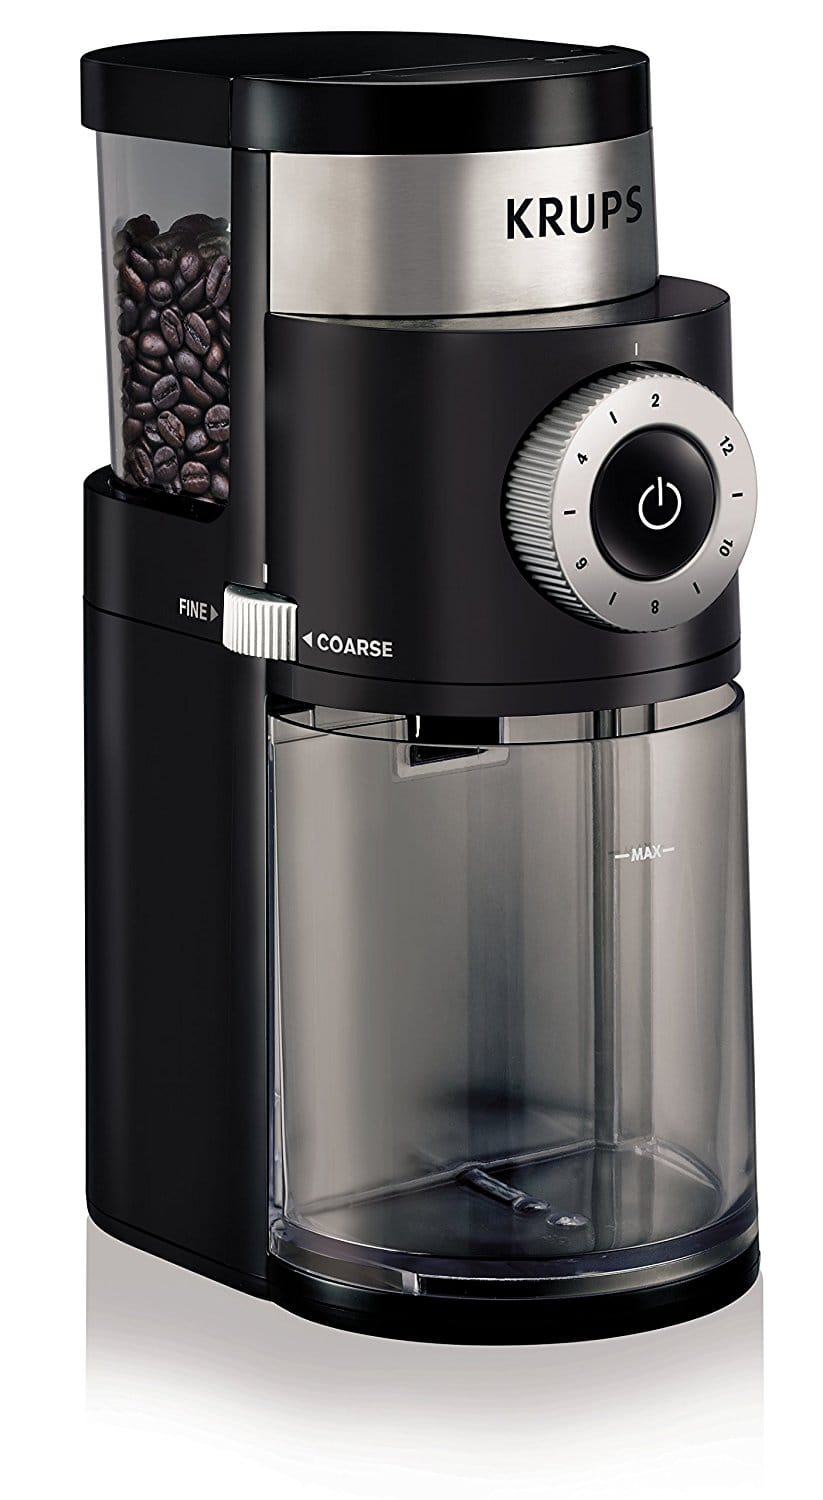 KRUPS GX5000 Professional Electric Coffee Burr Grinder with Grind Size and Cup Selection, 7-Ounce, Black for $15; FS with Amazon prime.